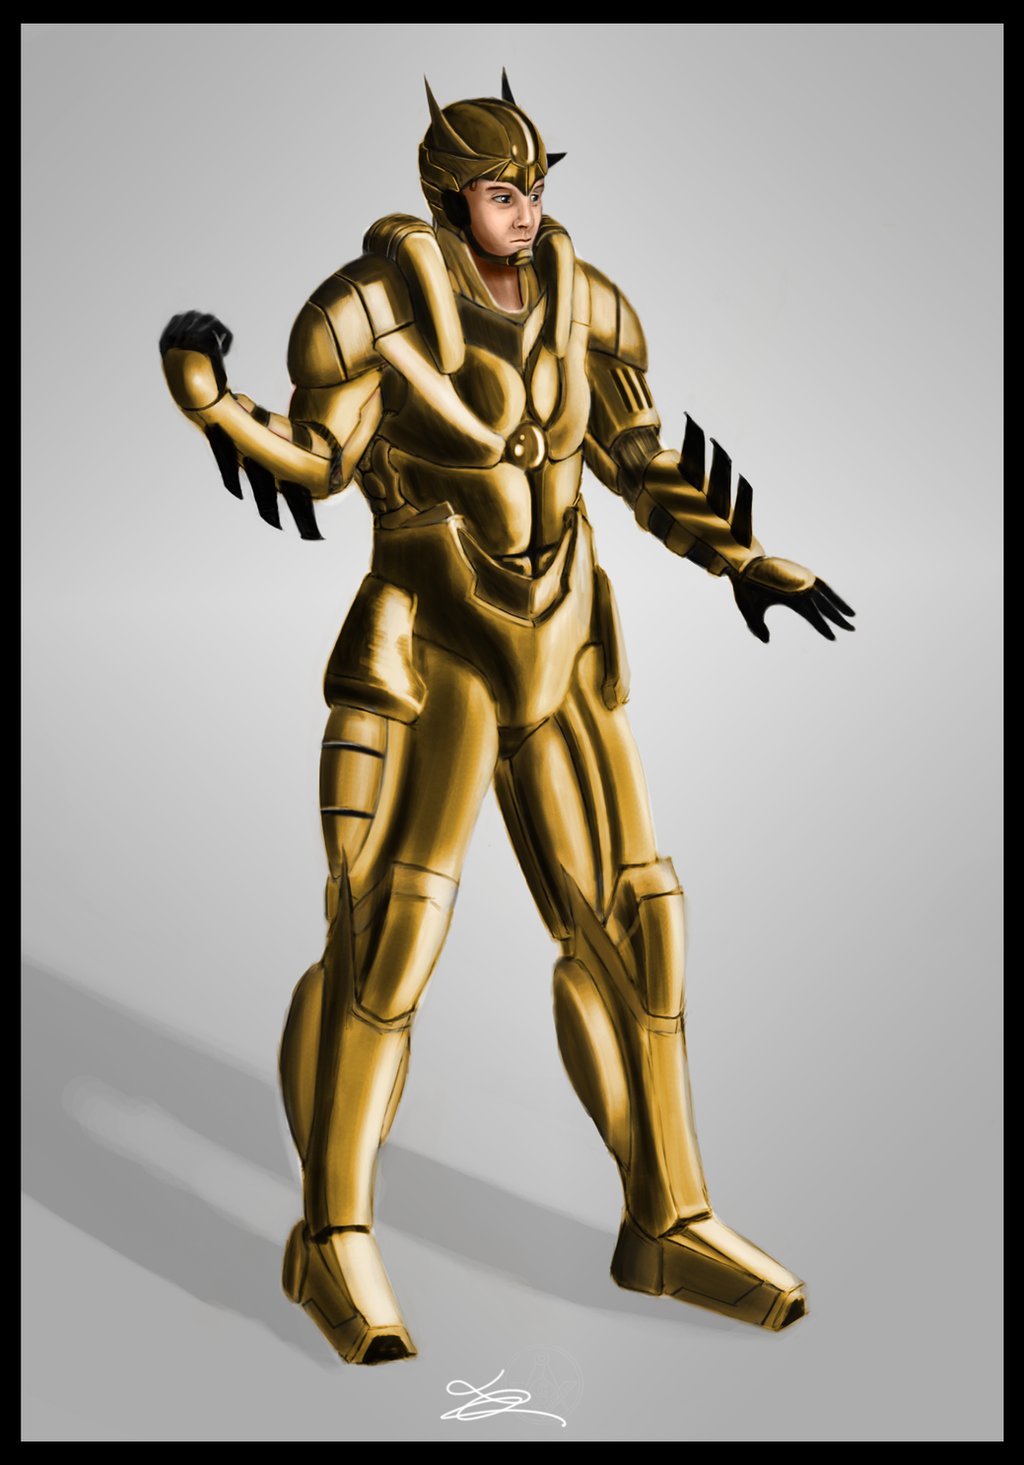 god u0027s soldier armor v 1 0 gold suit by chatelainlucart on deviantart